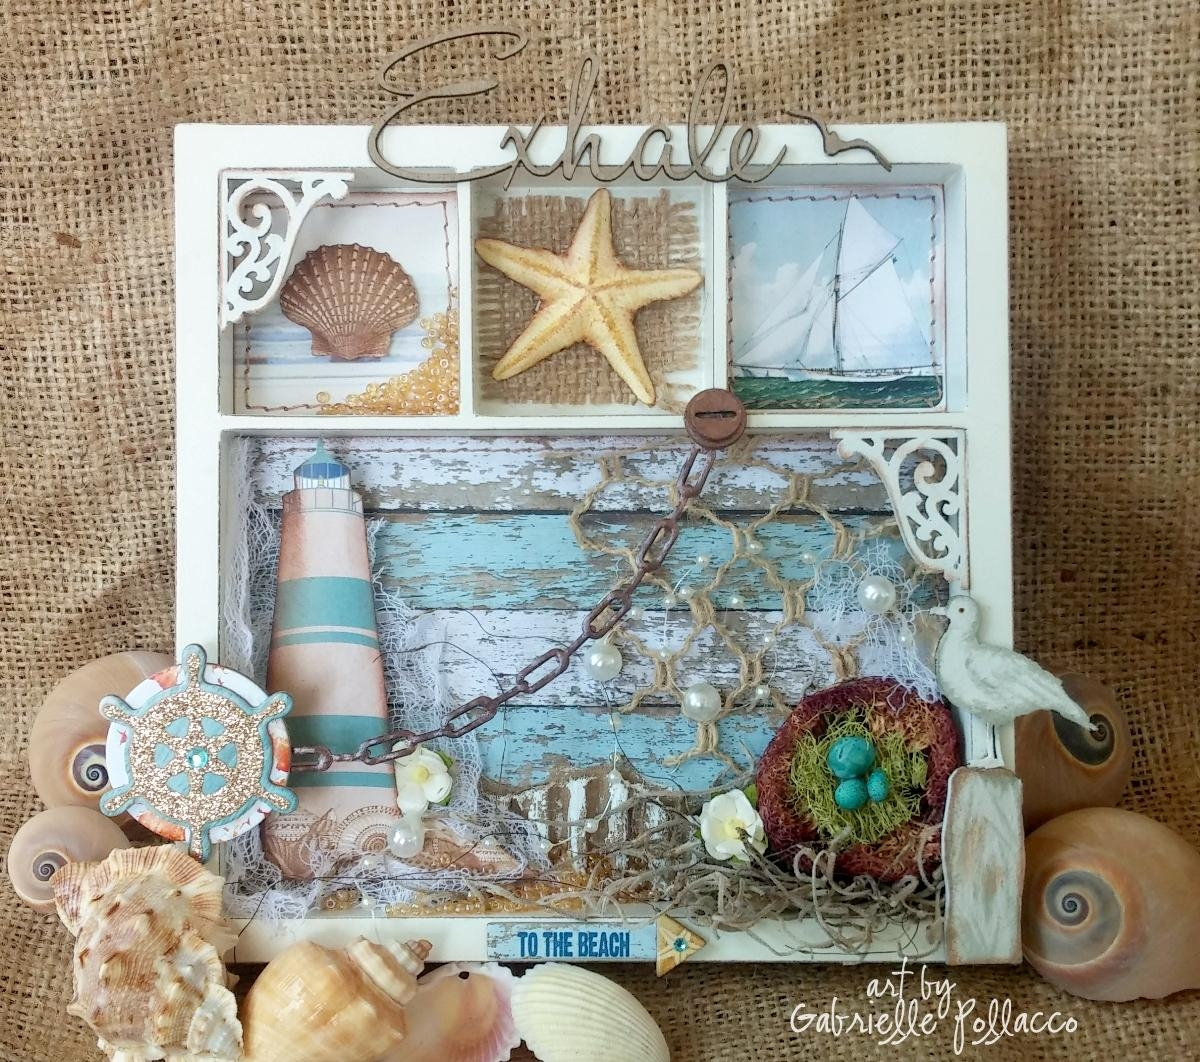 Such A Pretty Mess: Nautical/beach Themed Wall Art {Bobunny Regarding Beach Themed Wall Art (Image 11 of 20)